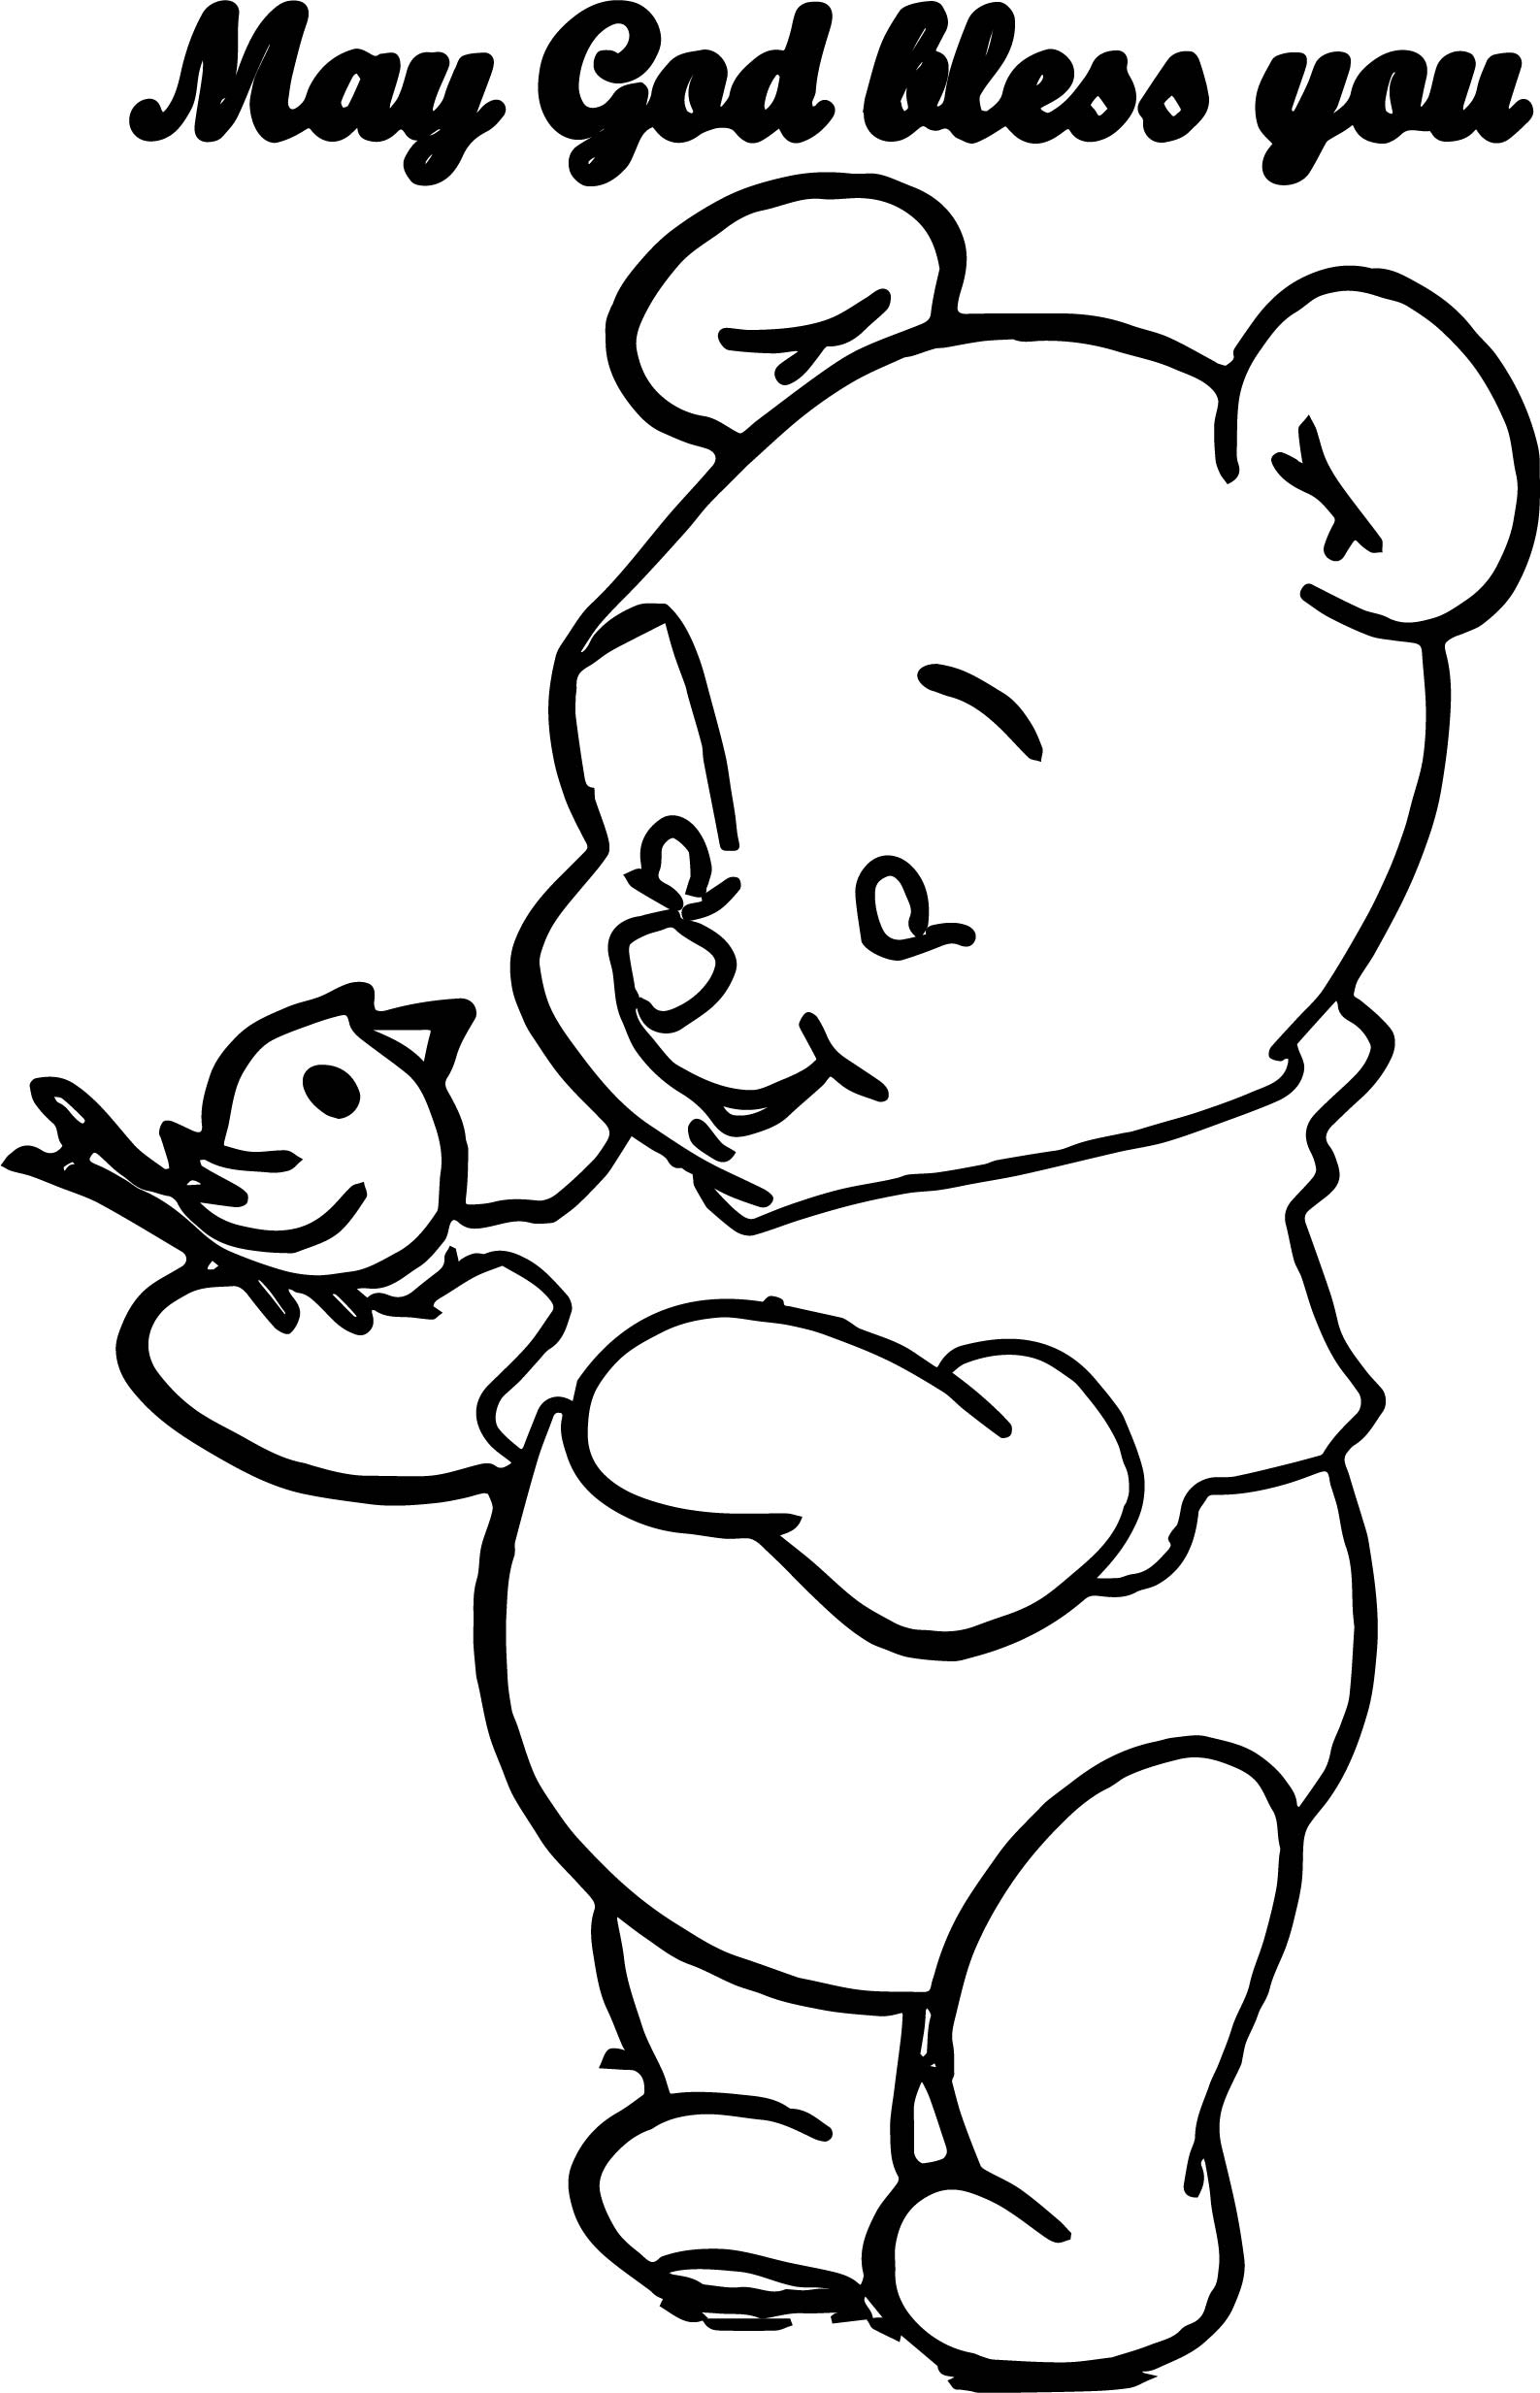 free pooh bear coloring pages - free baby pooh book coloring page